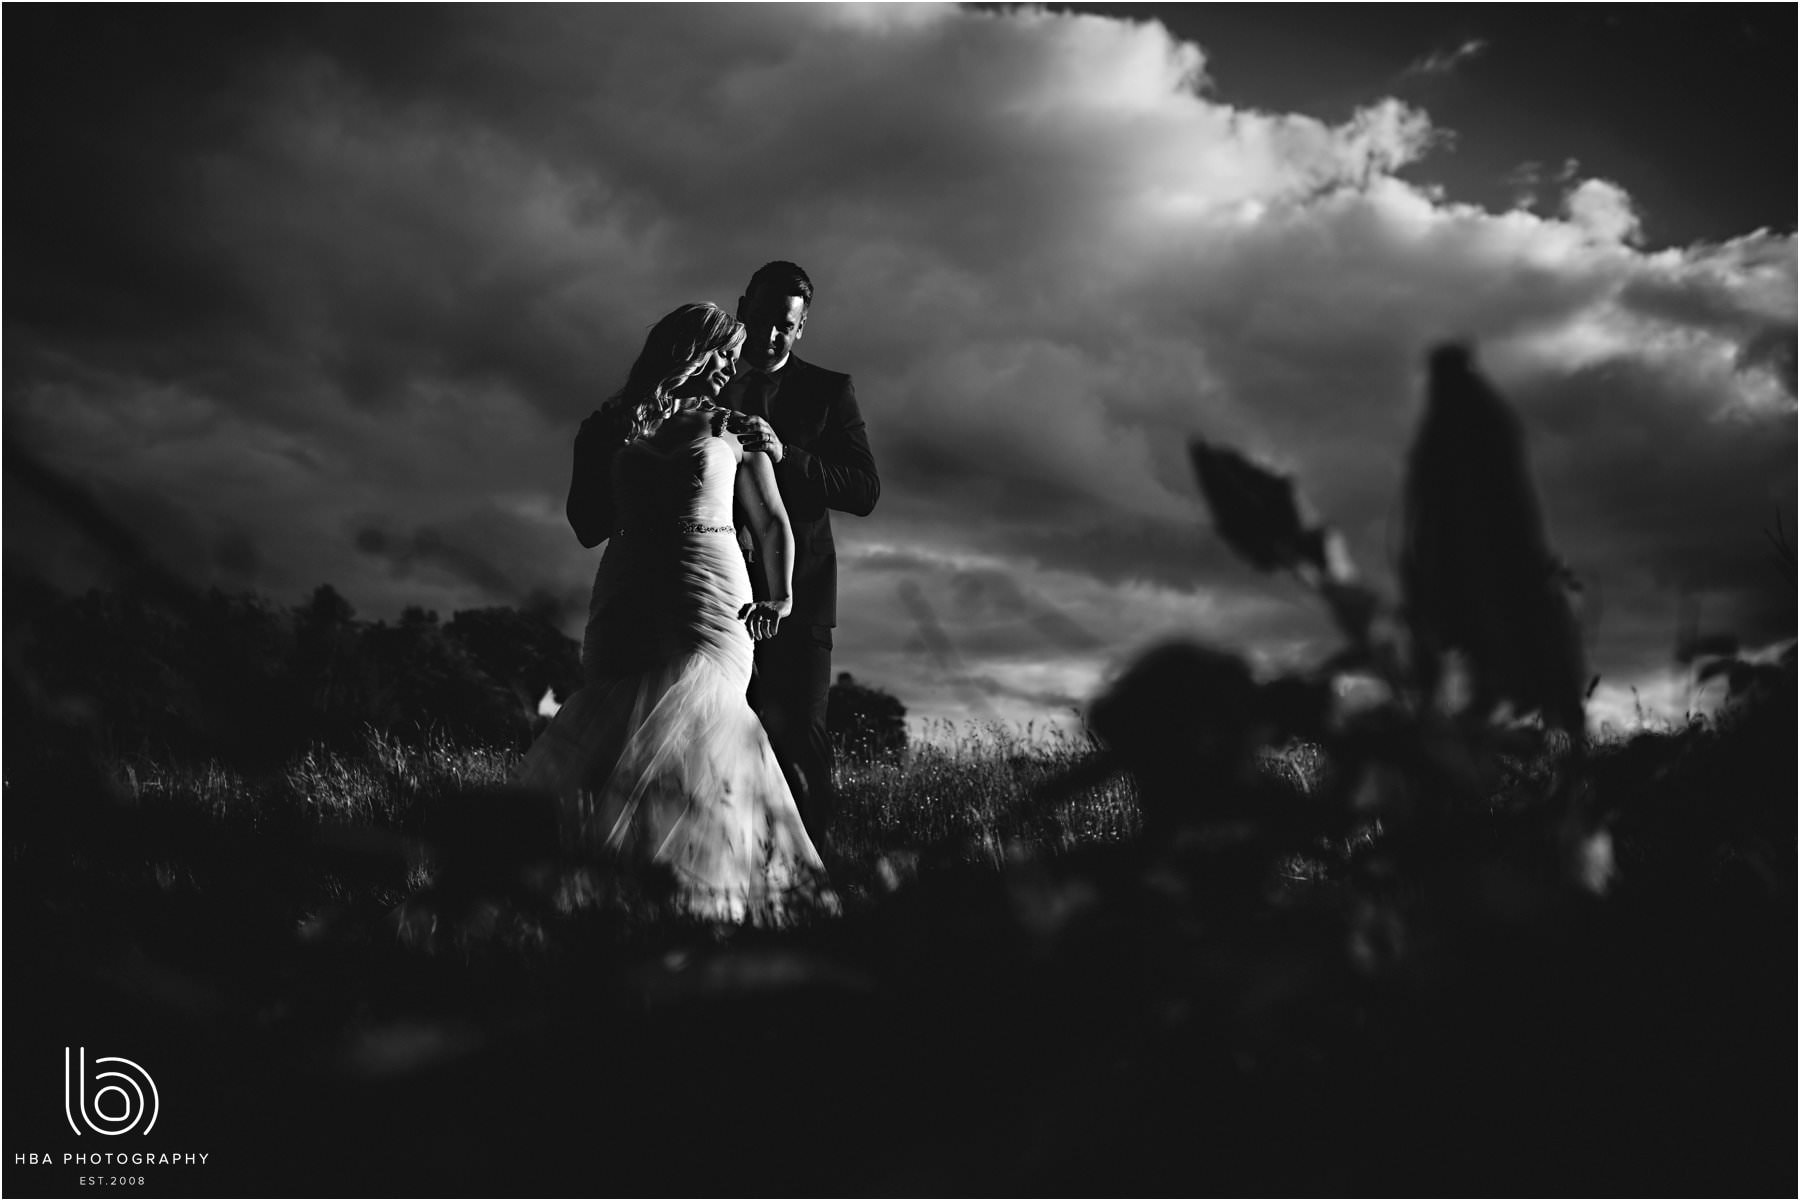 The bride & groom in B&W